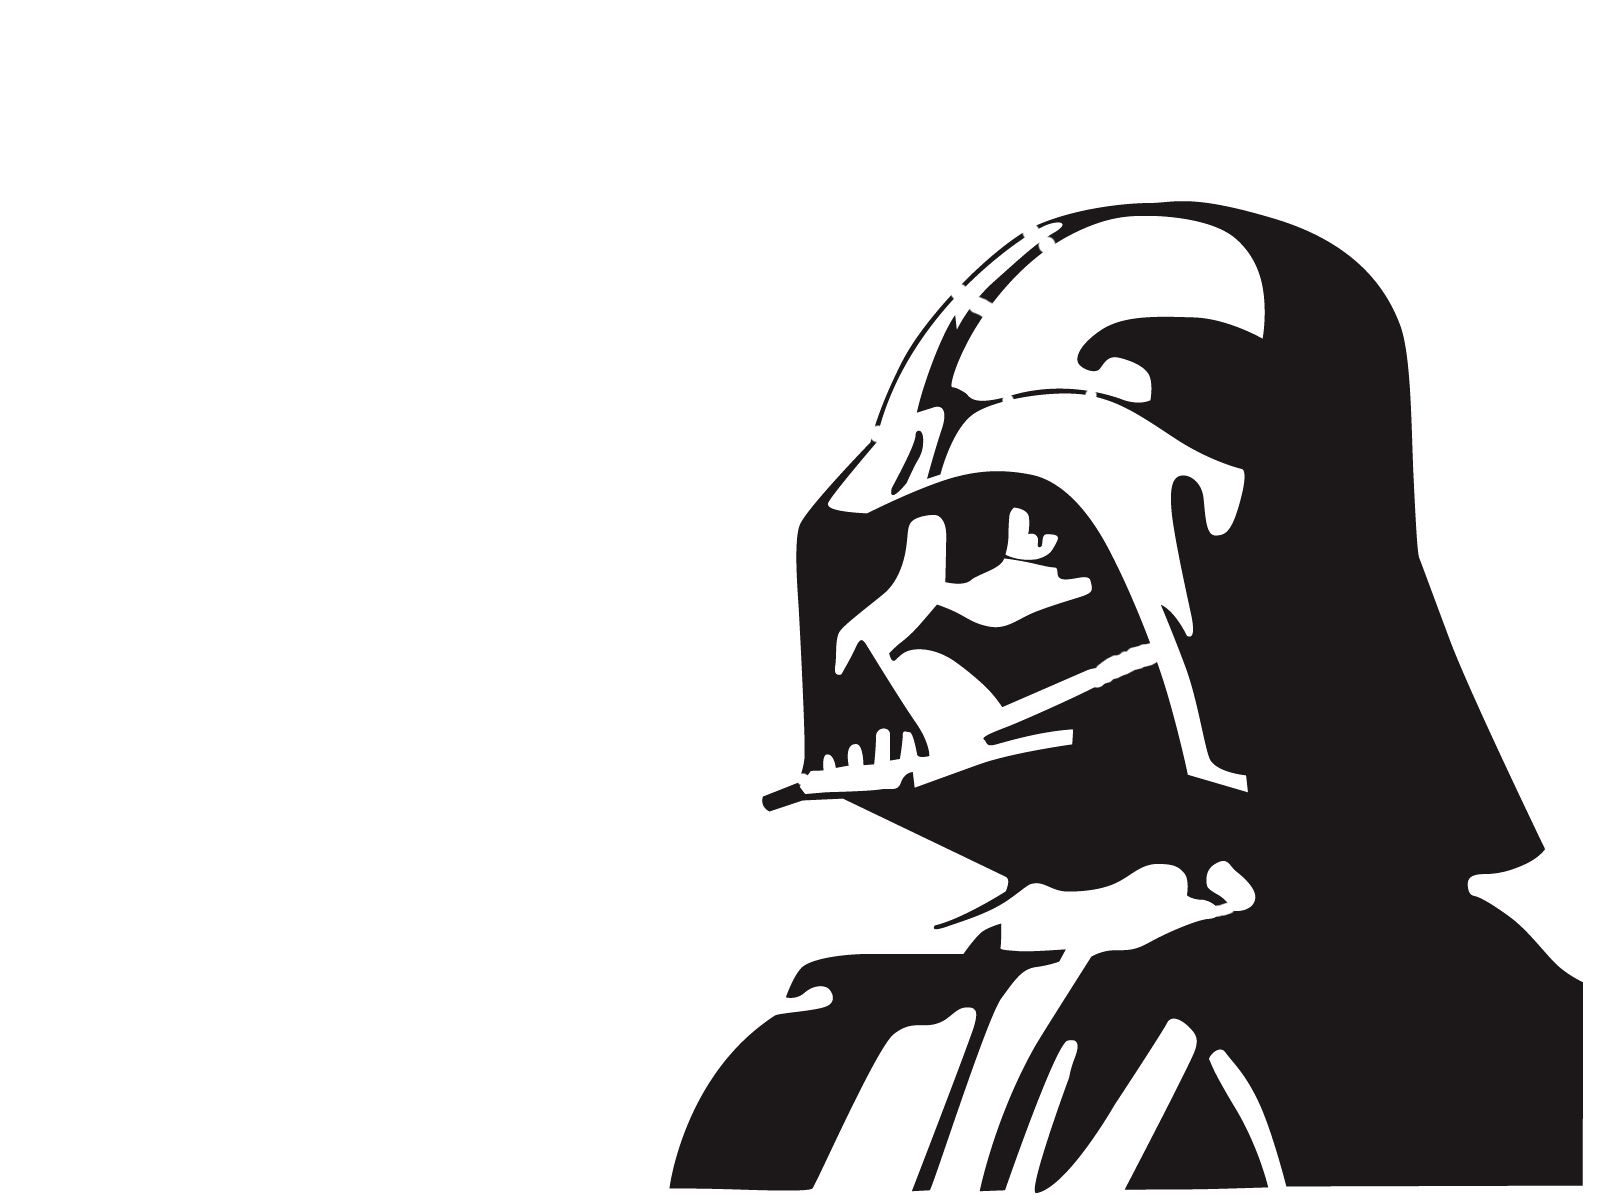 Plotterdatei Star Wars Darth Vader By Graffitiwatcher On Deviantart Silouettes